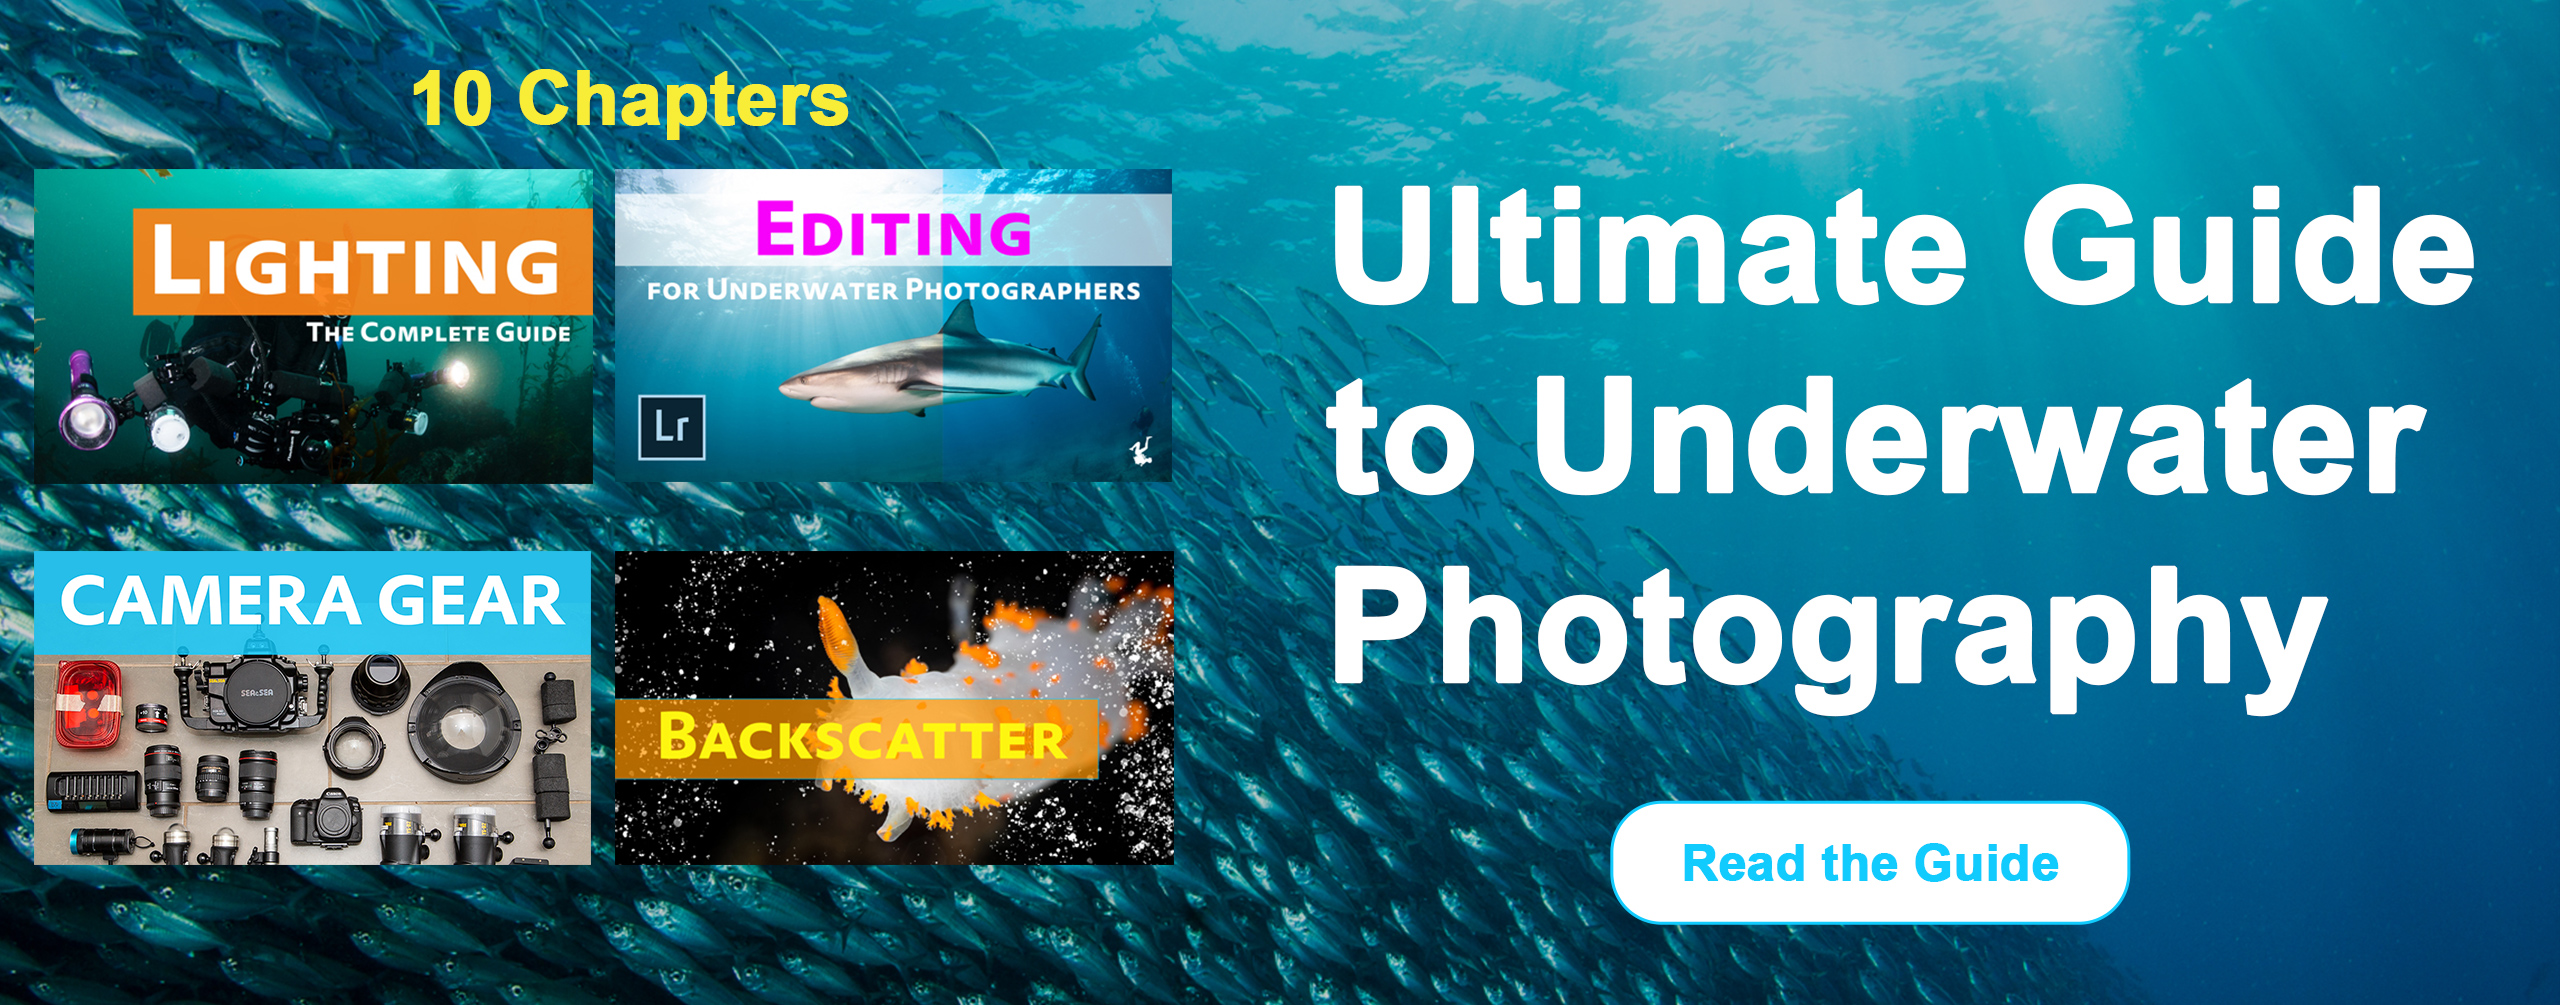 Ultimate Guide to Underwater Photography hero